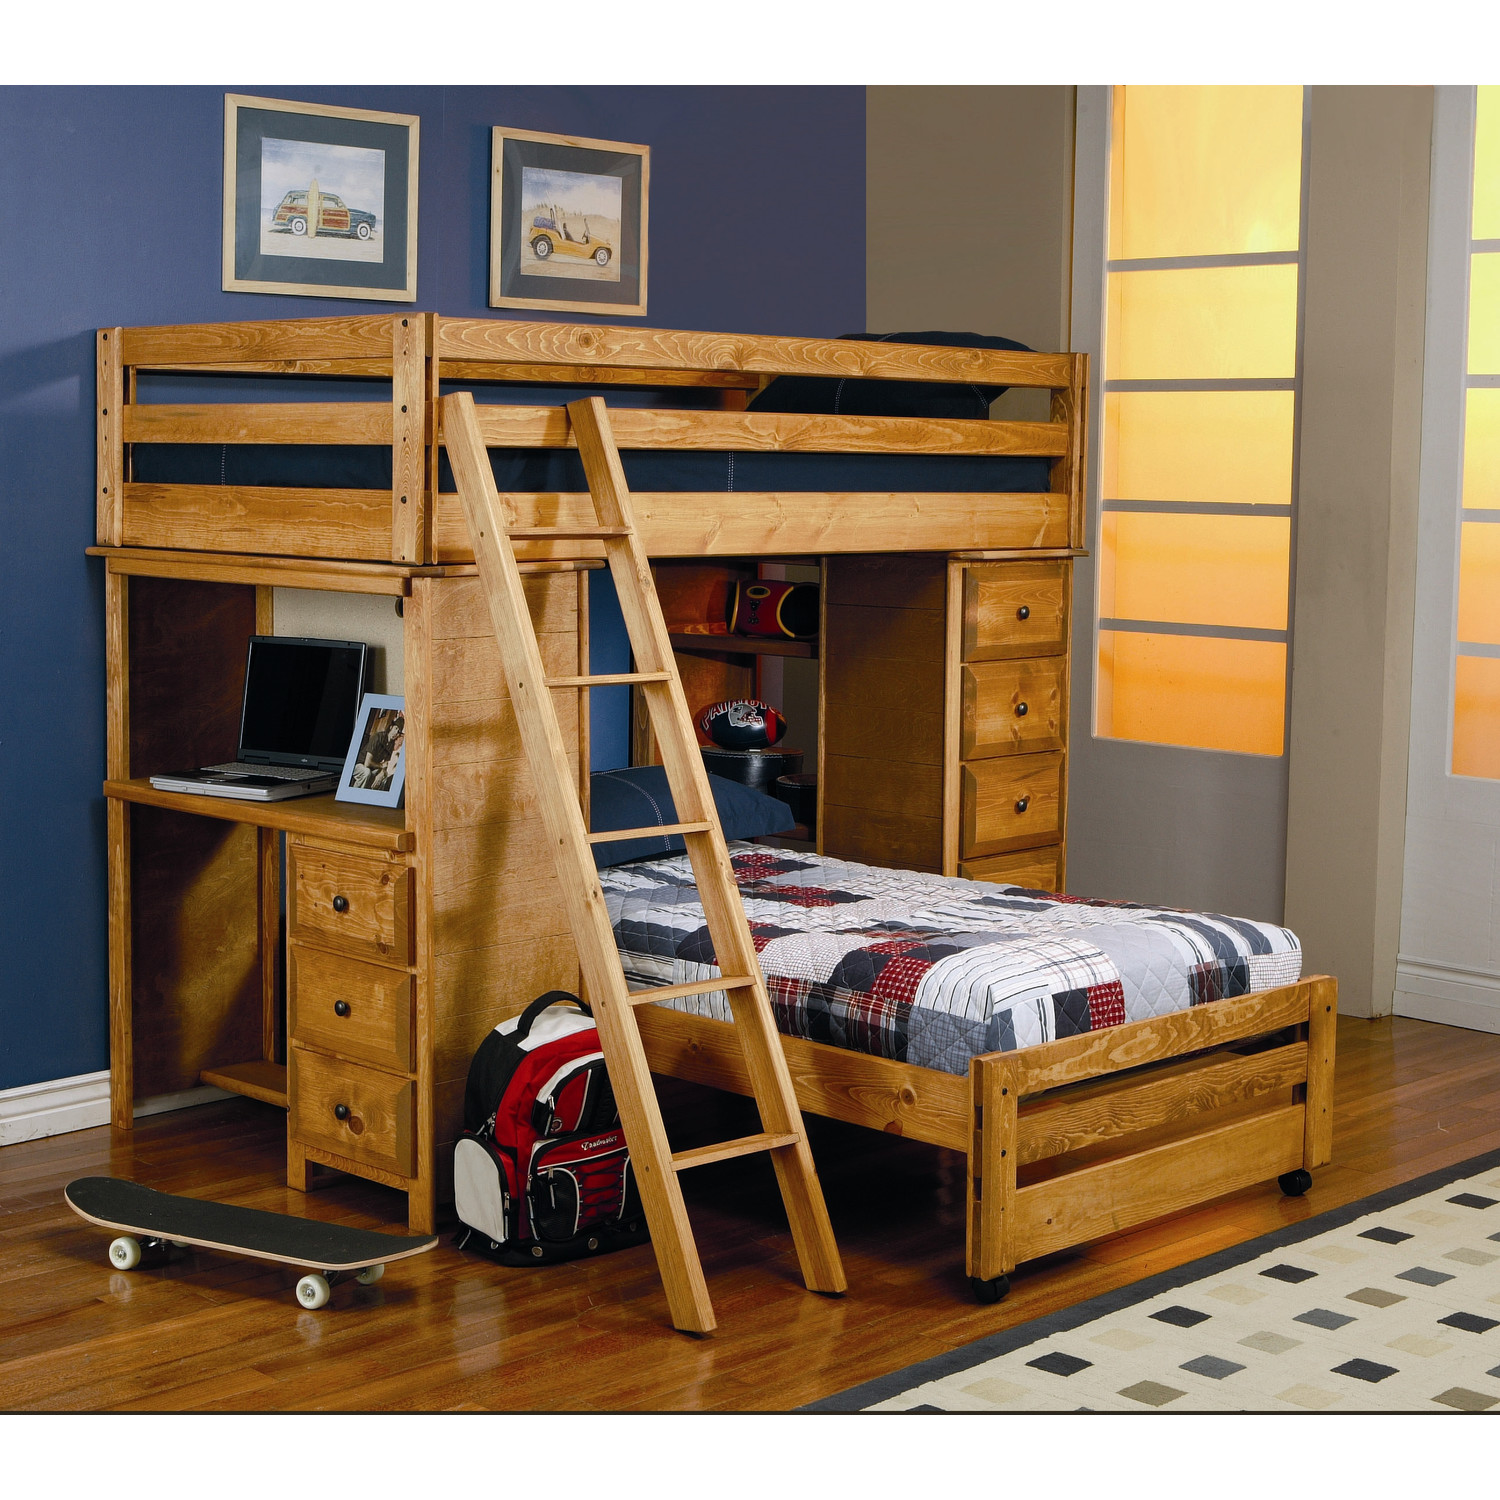 Childrens Storage Beds For Small Rooms Bunk Bed With Storage Ukfull Size Offree Kids Bunk Bed Baby